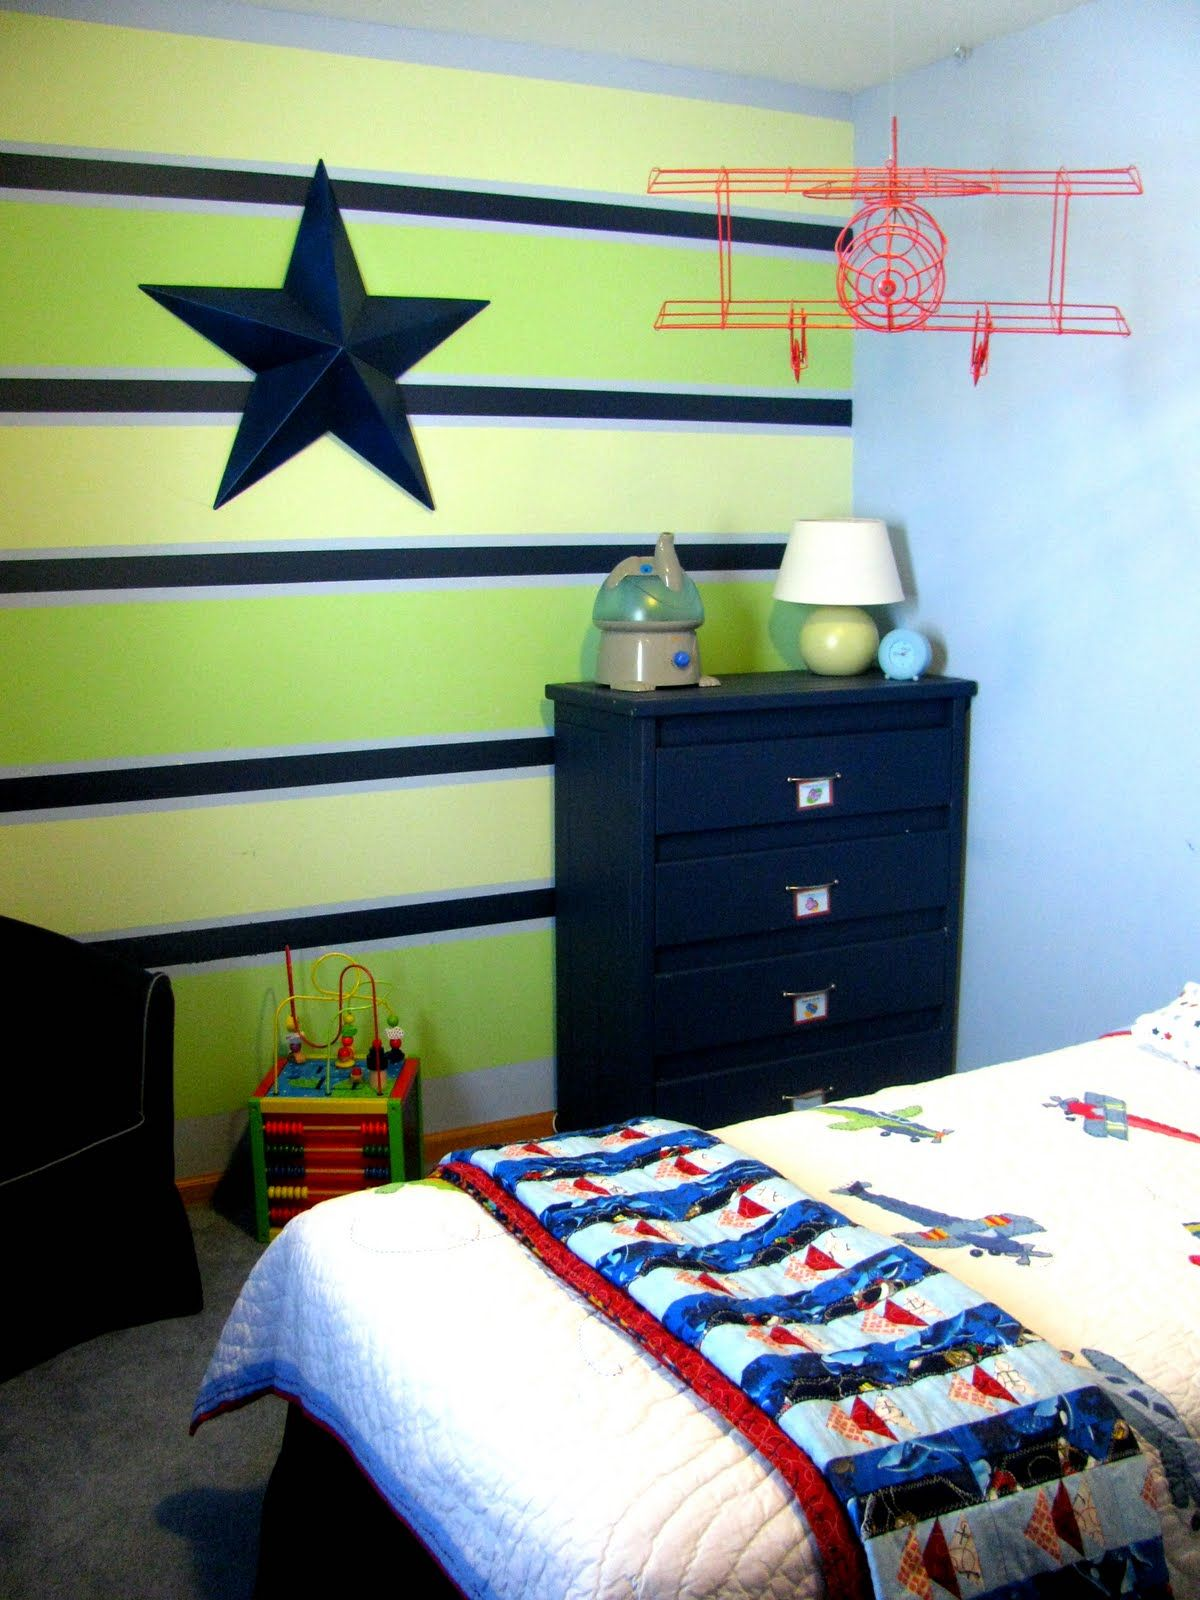 Bedroom wall decoration for kids - Love The Colors On That Striped Wall Boys Room Design Ideas In Dark Blue And